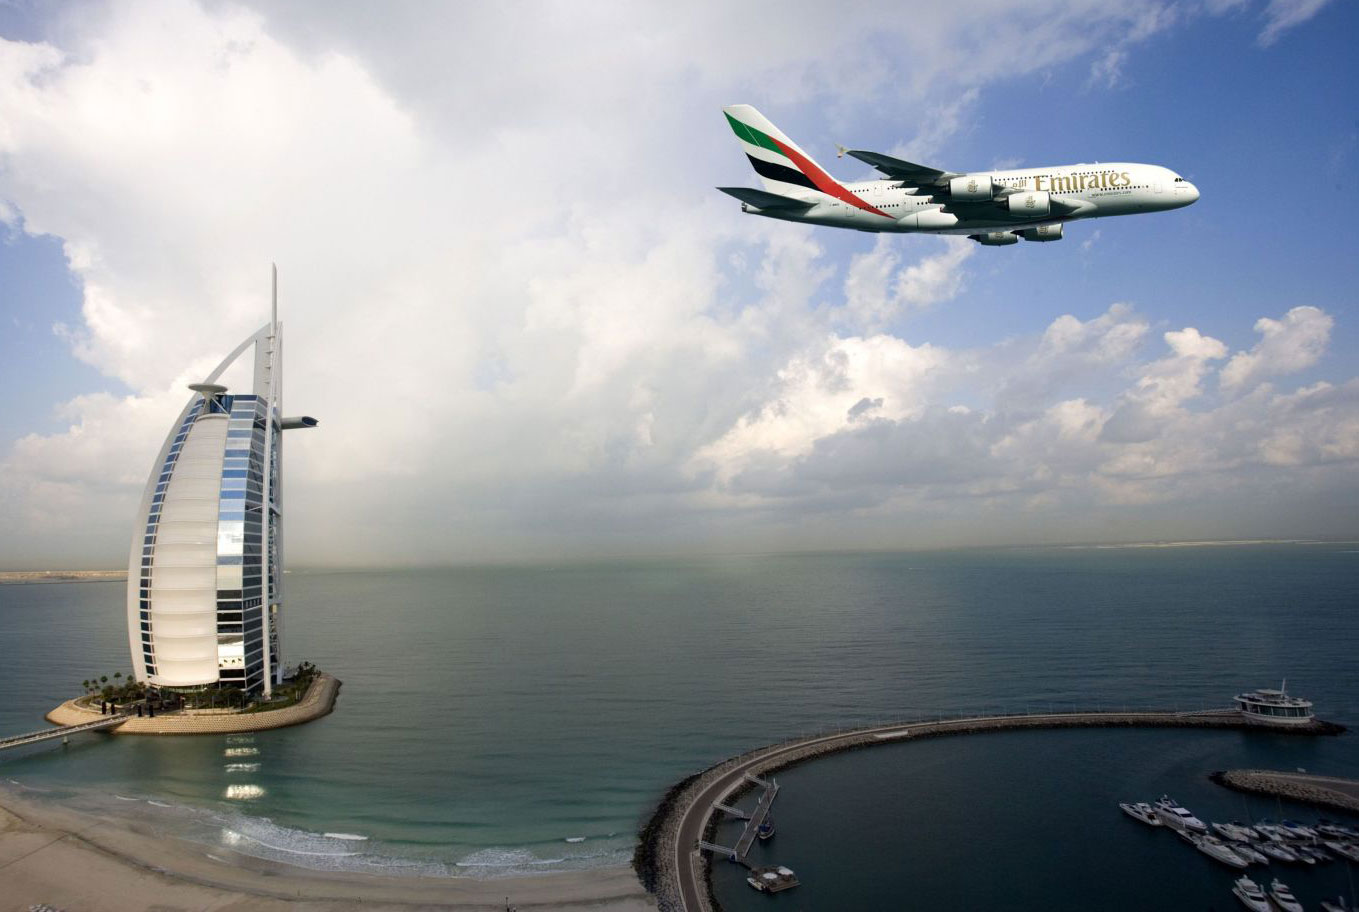 Passion for luxury emirates a luxury hotel up in the air for Emirates hotel dubai